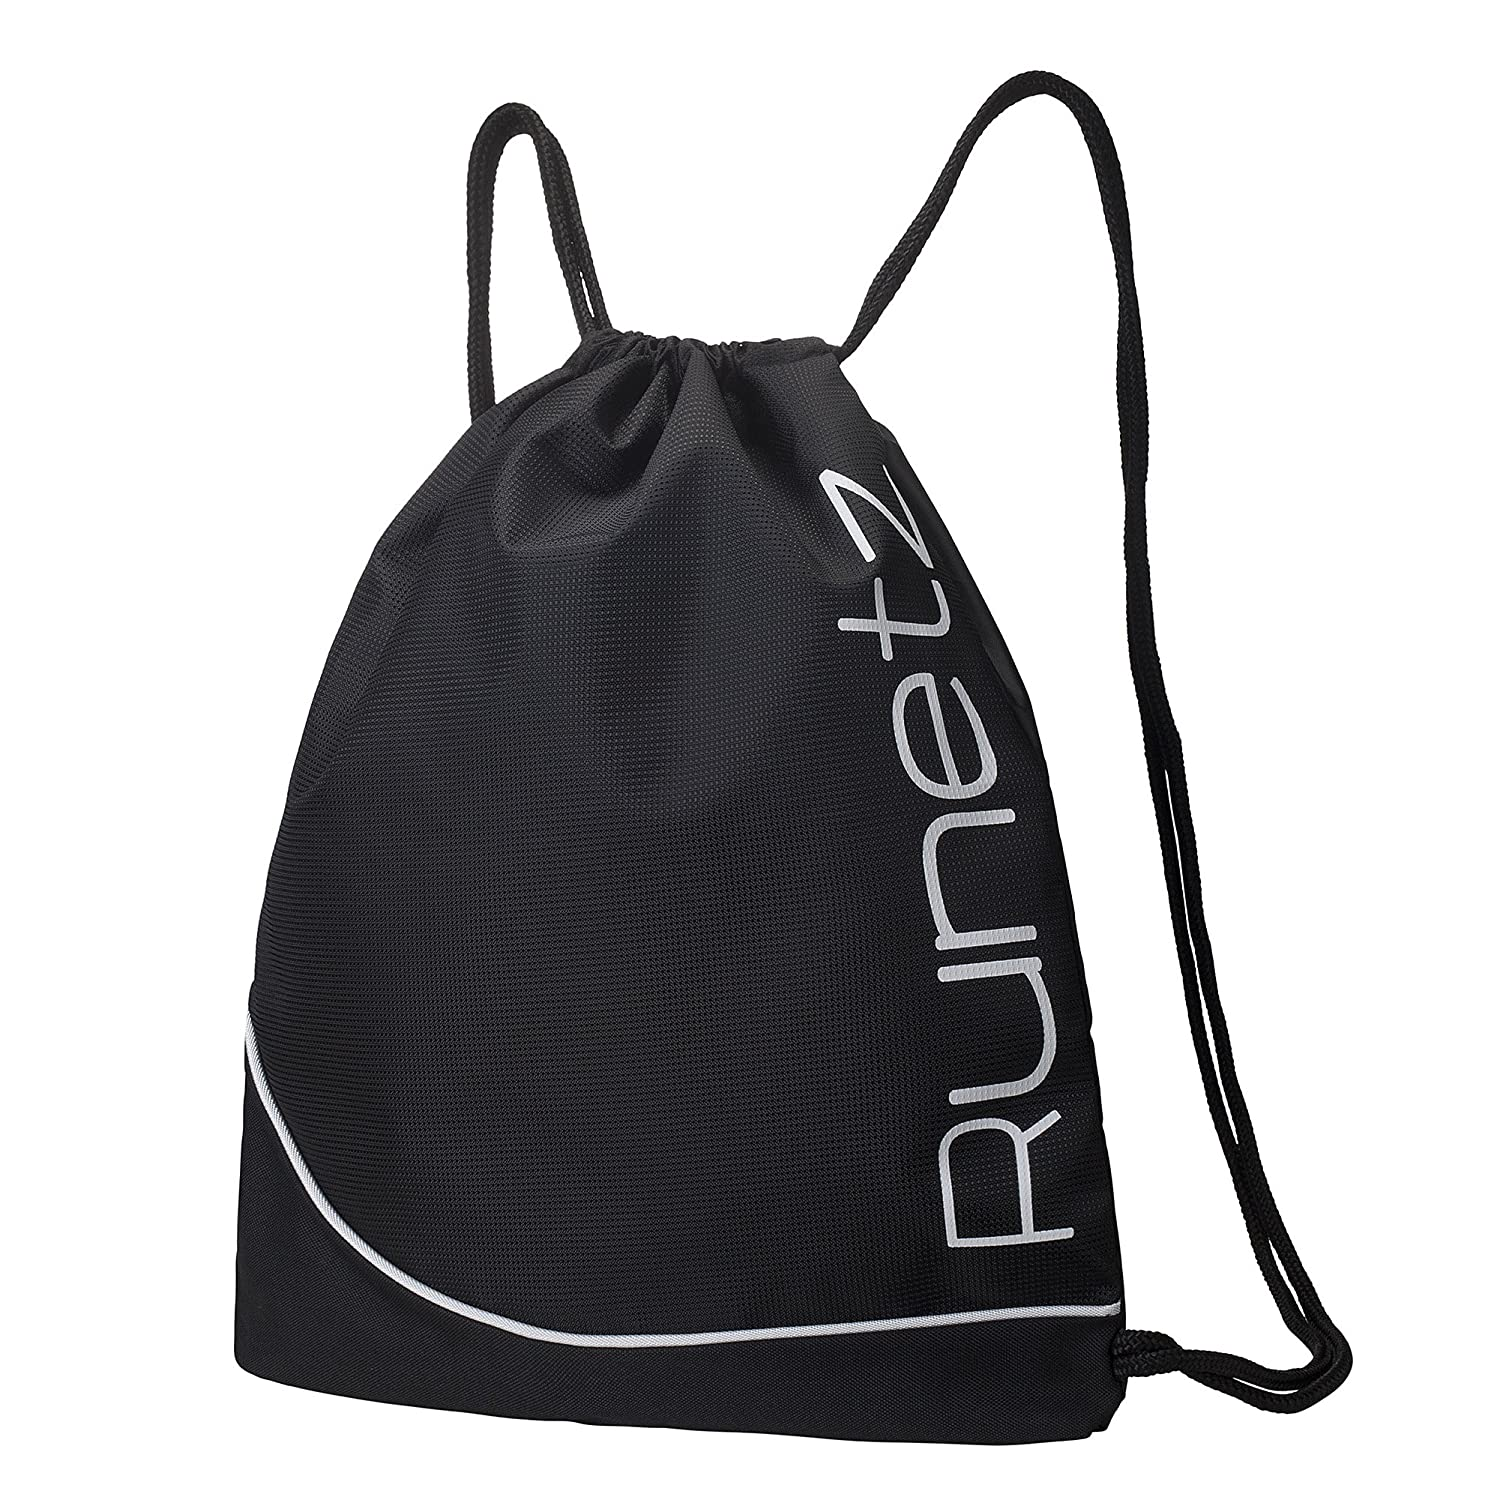 ca86e70545d7 Buy cheap bag for gym  Up to OFF67% Discounts